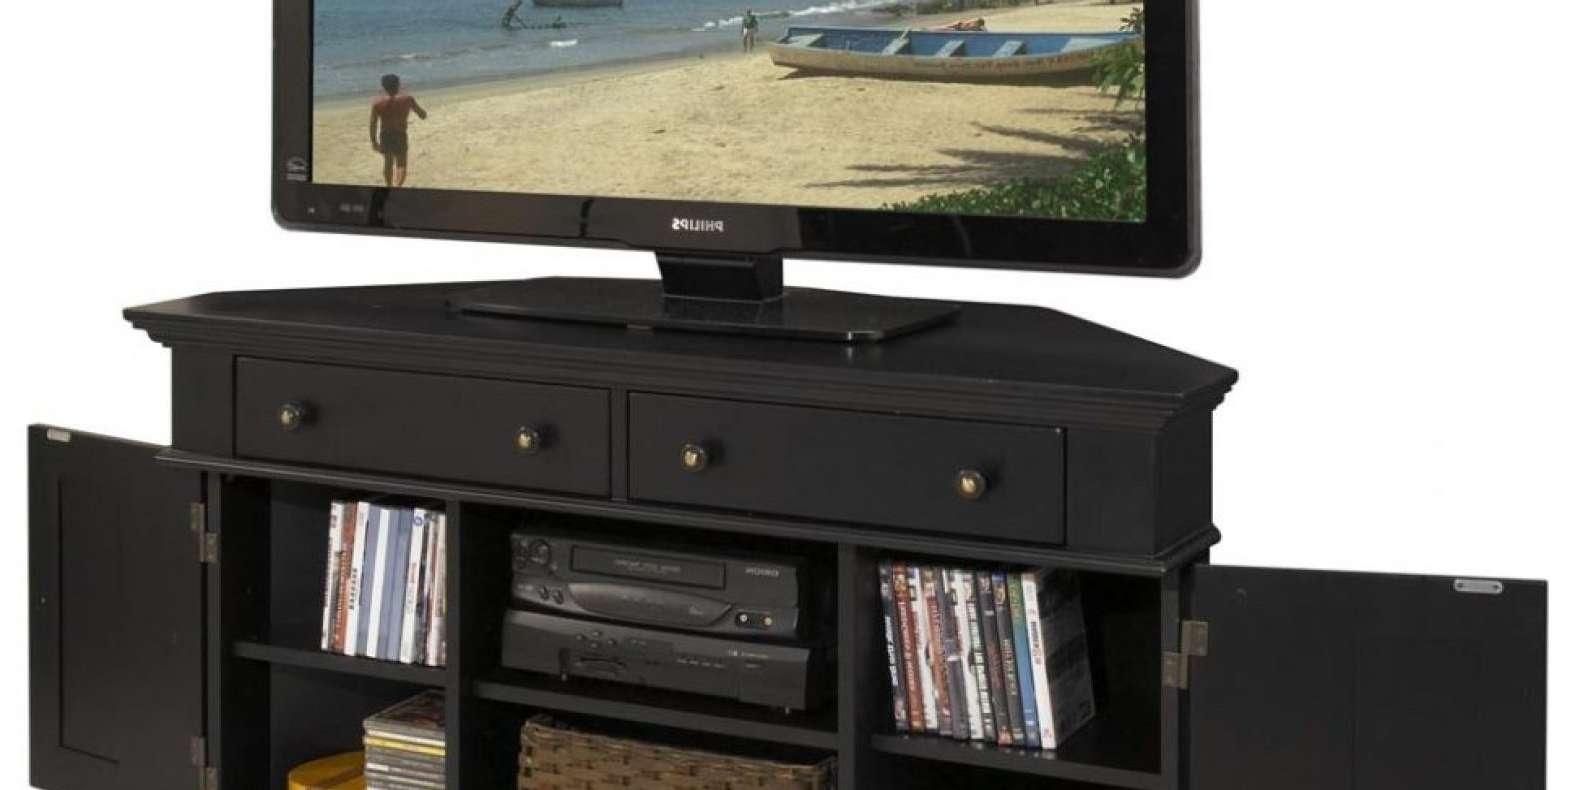 Mesmerize Slimline Tv Stand On Wheels Tags : Slimline Tv Stands Regarding Corner Tv Stands 46 Inch Flat Screen (View 4 of 15)